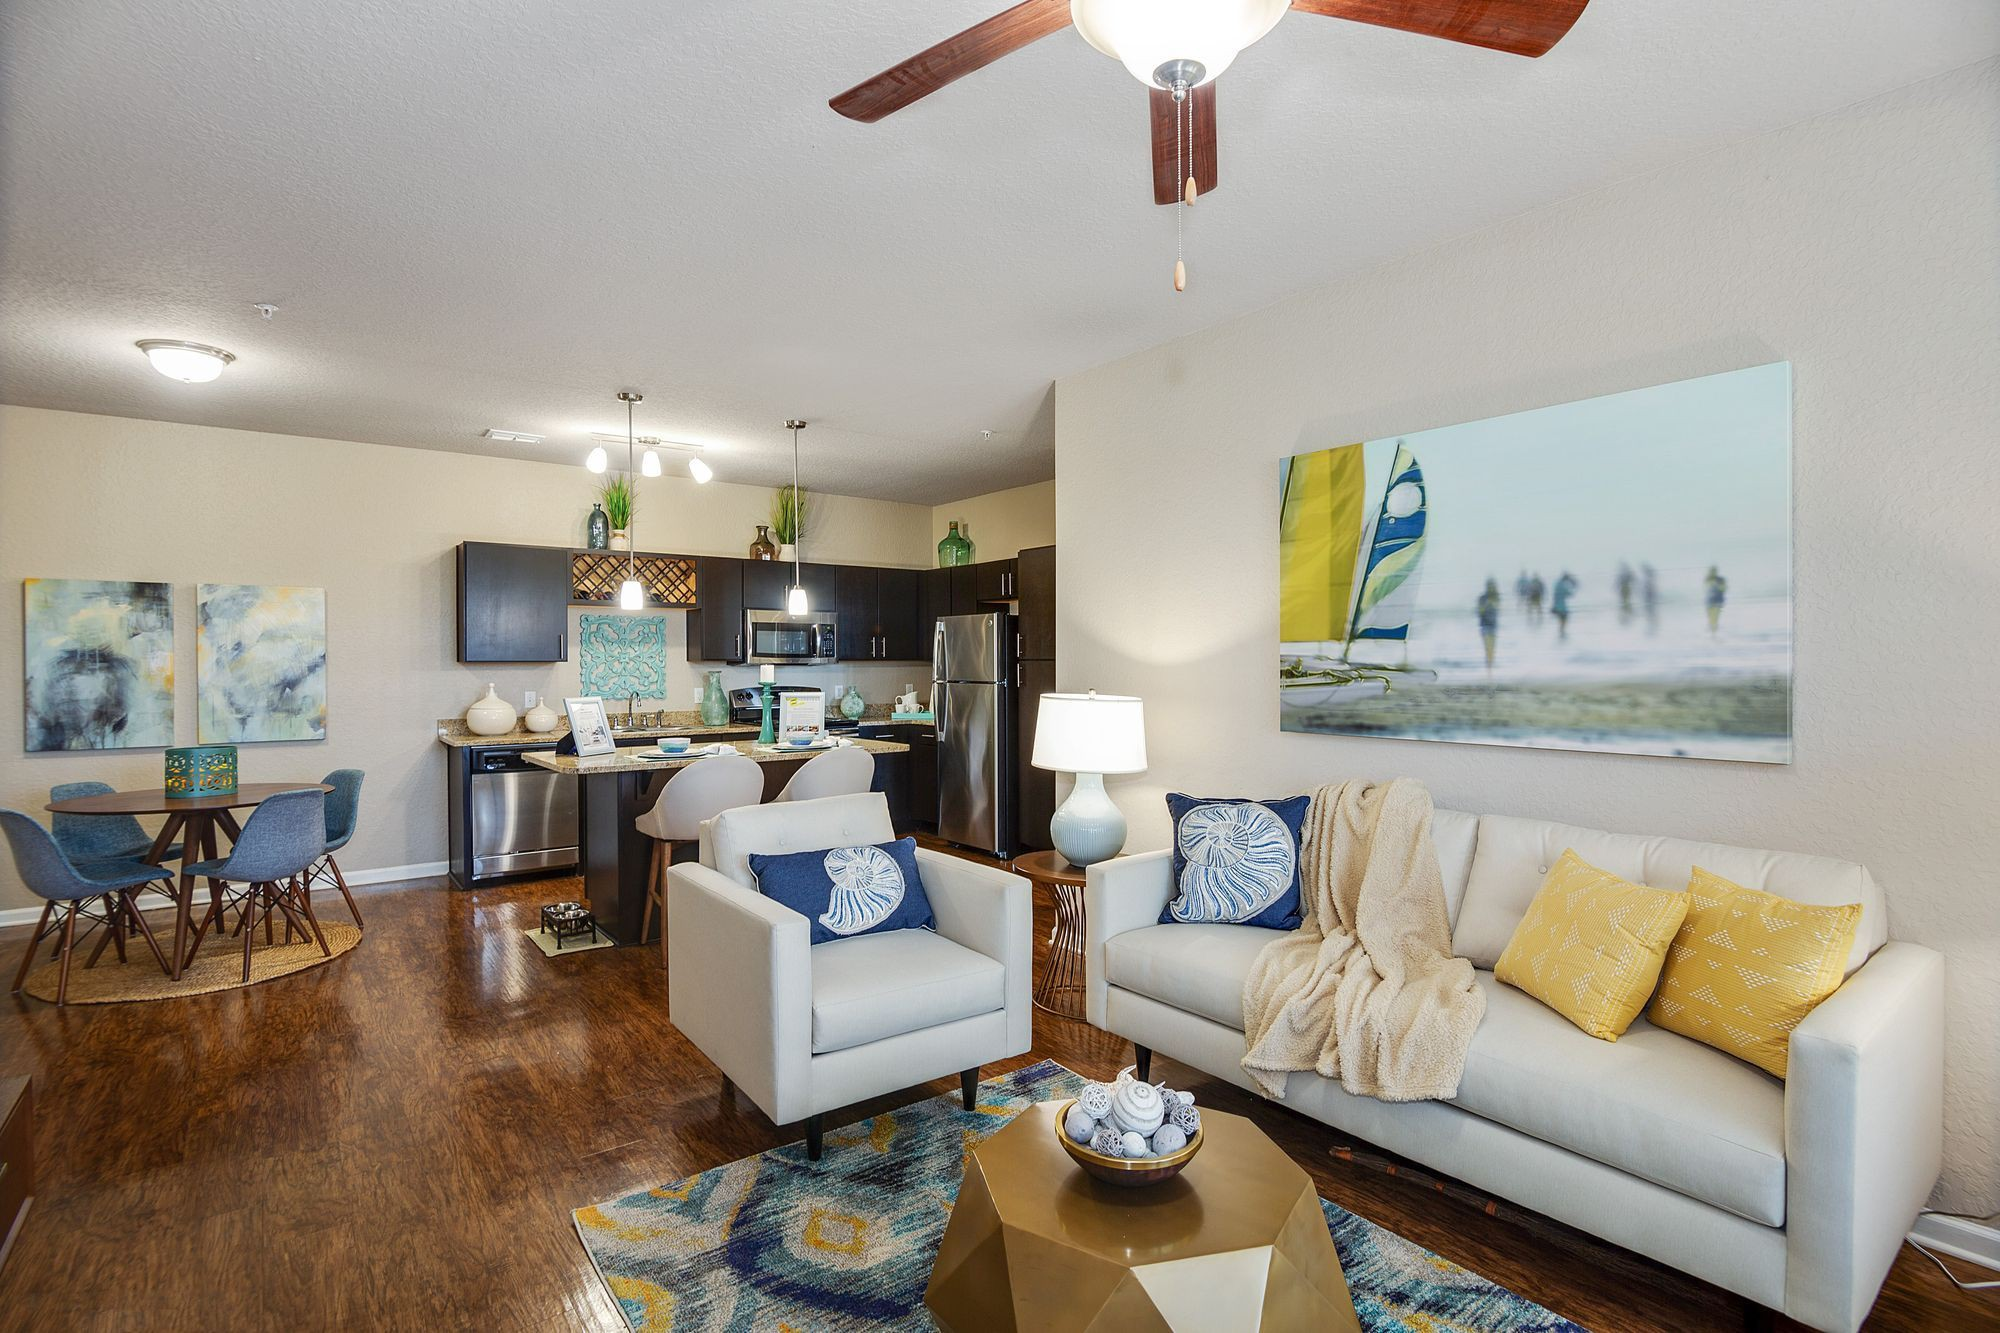 Apartments Near Stetson Springs At Port Orange for Stetson University Students in DeLand, FL